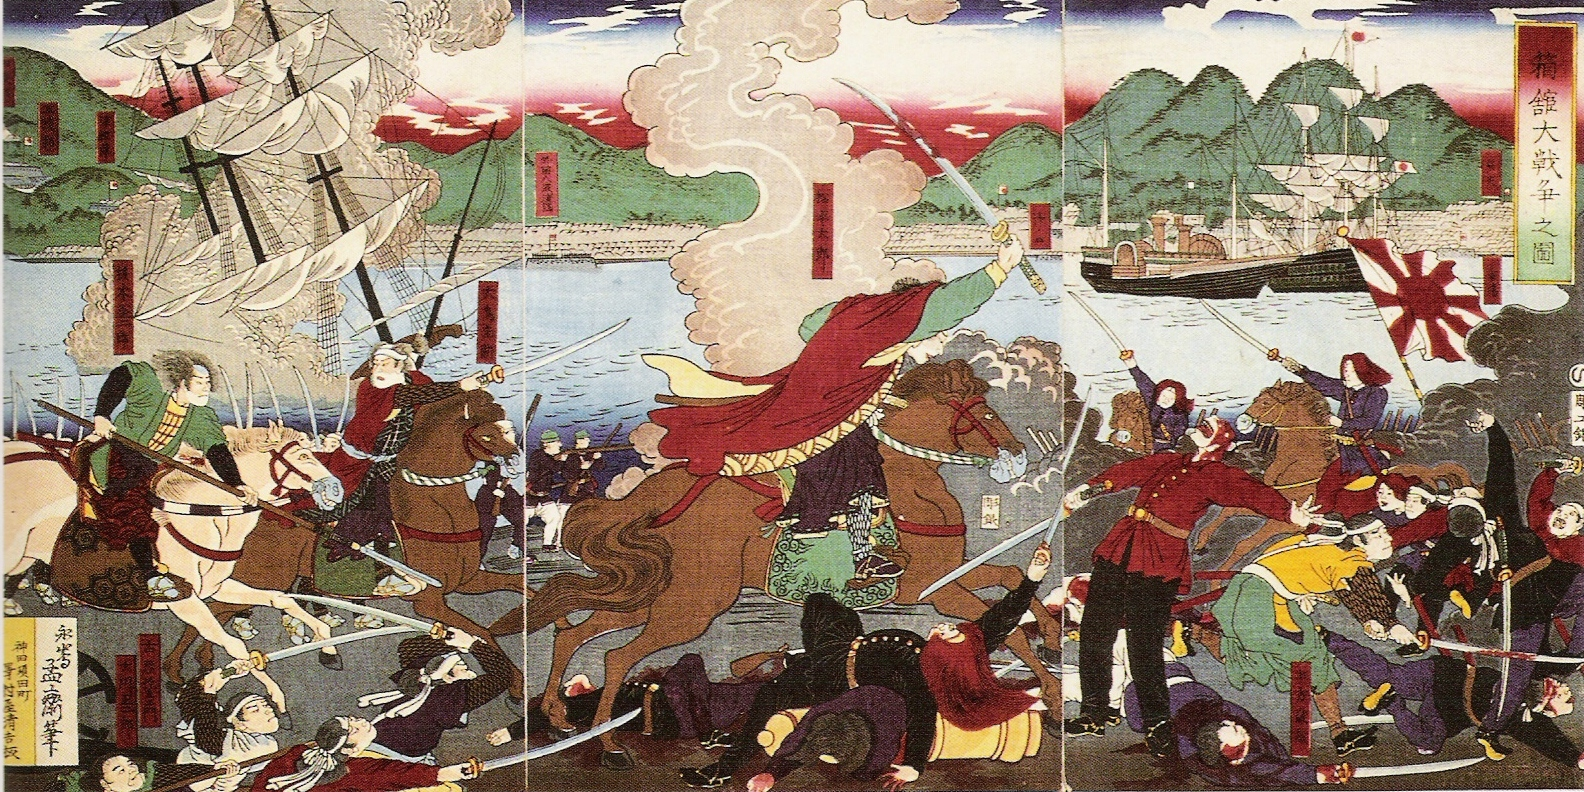 Land_And_Naval_Battle_of_Hakodate